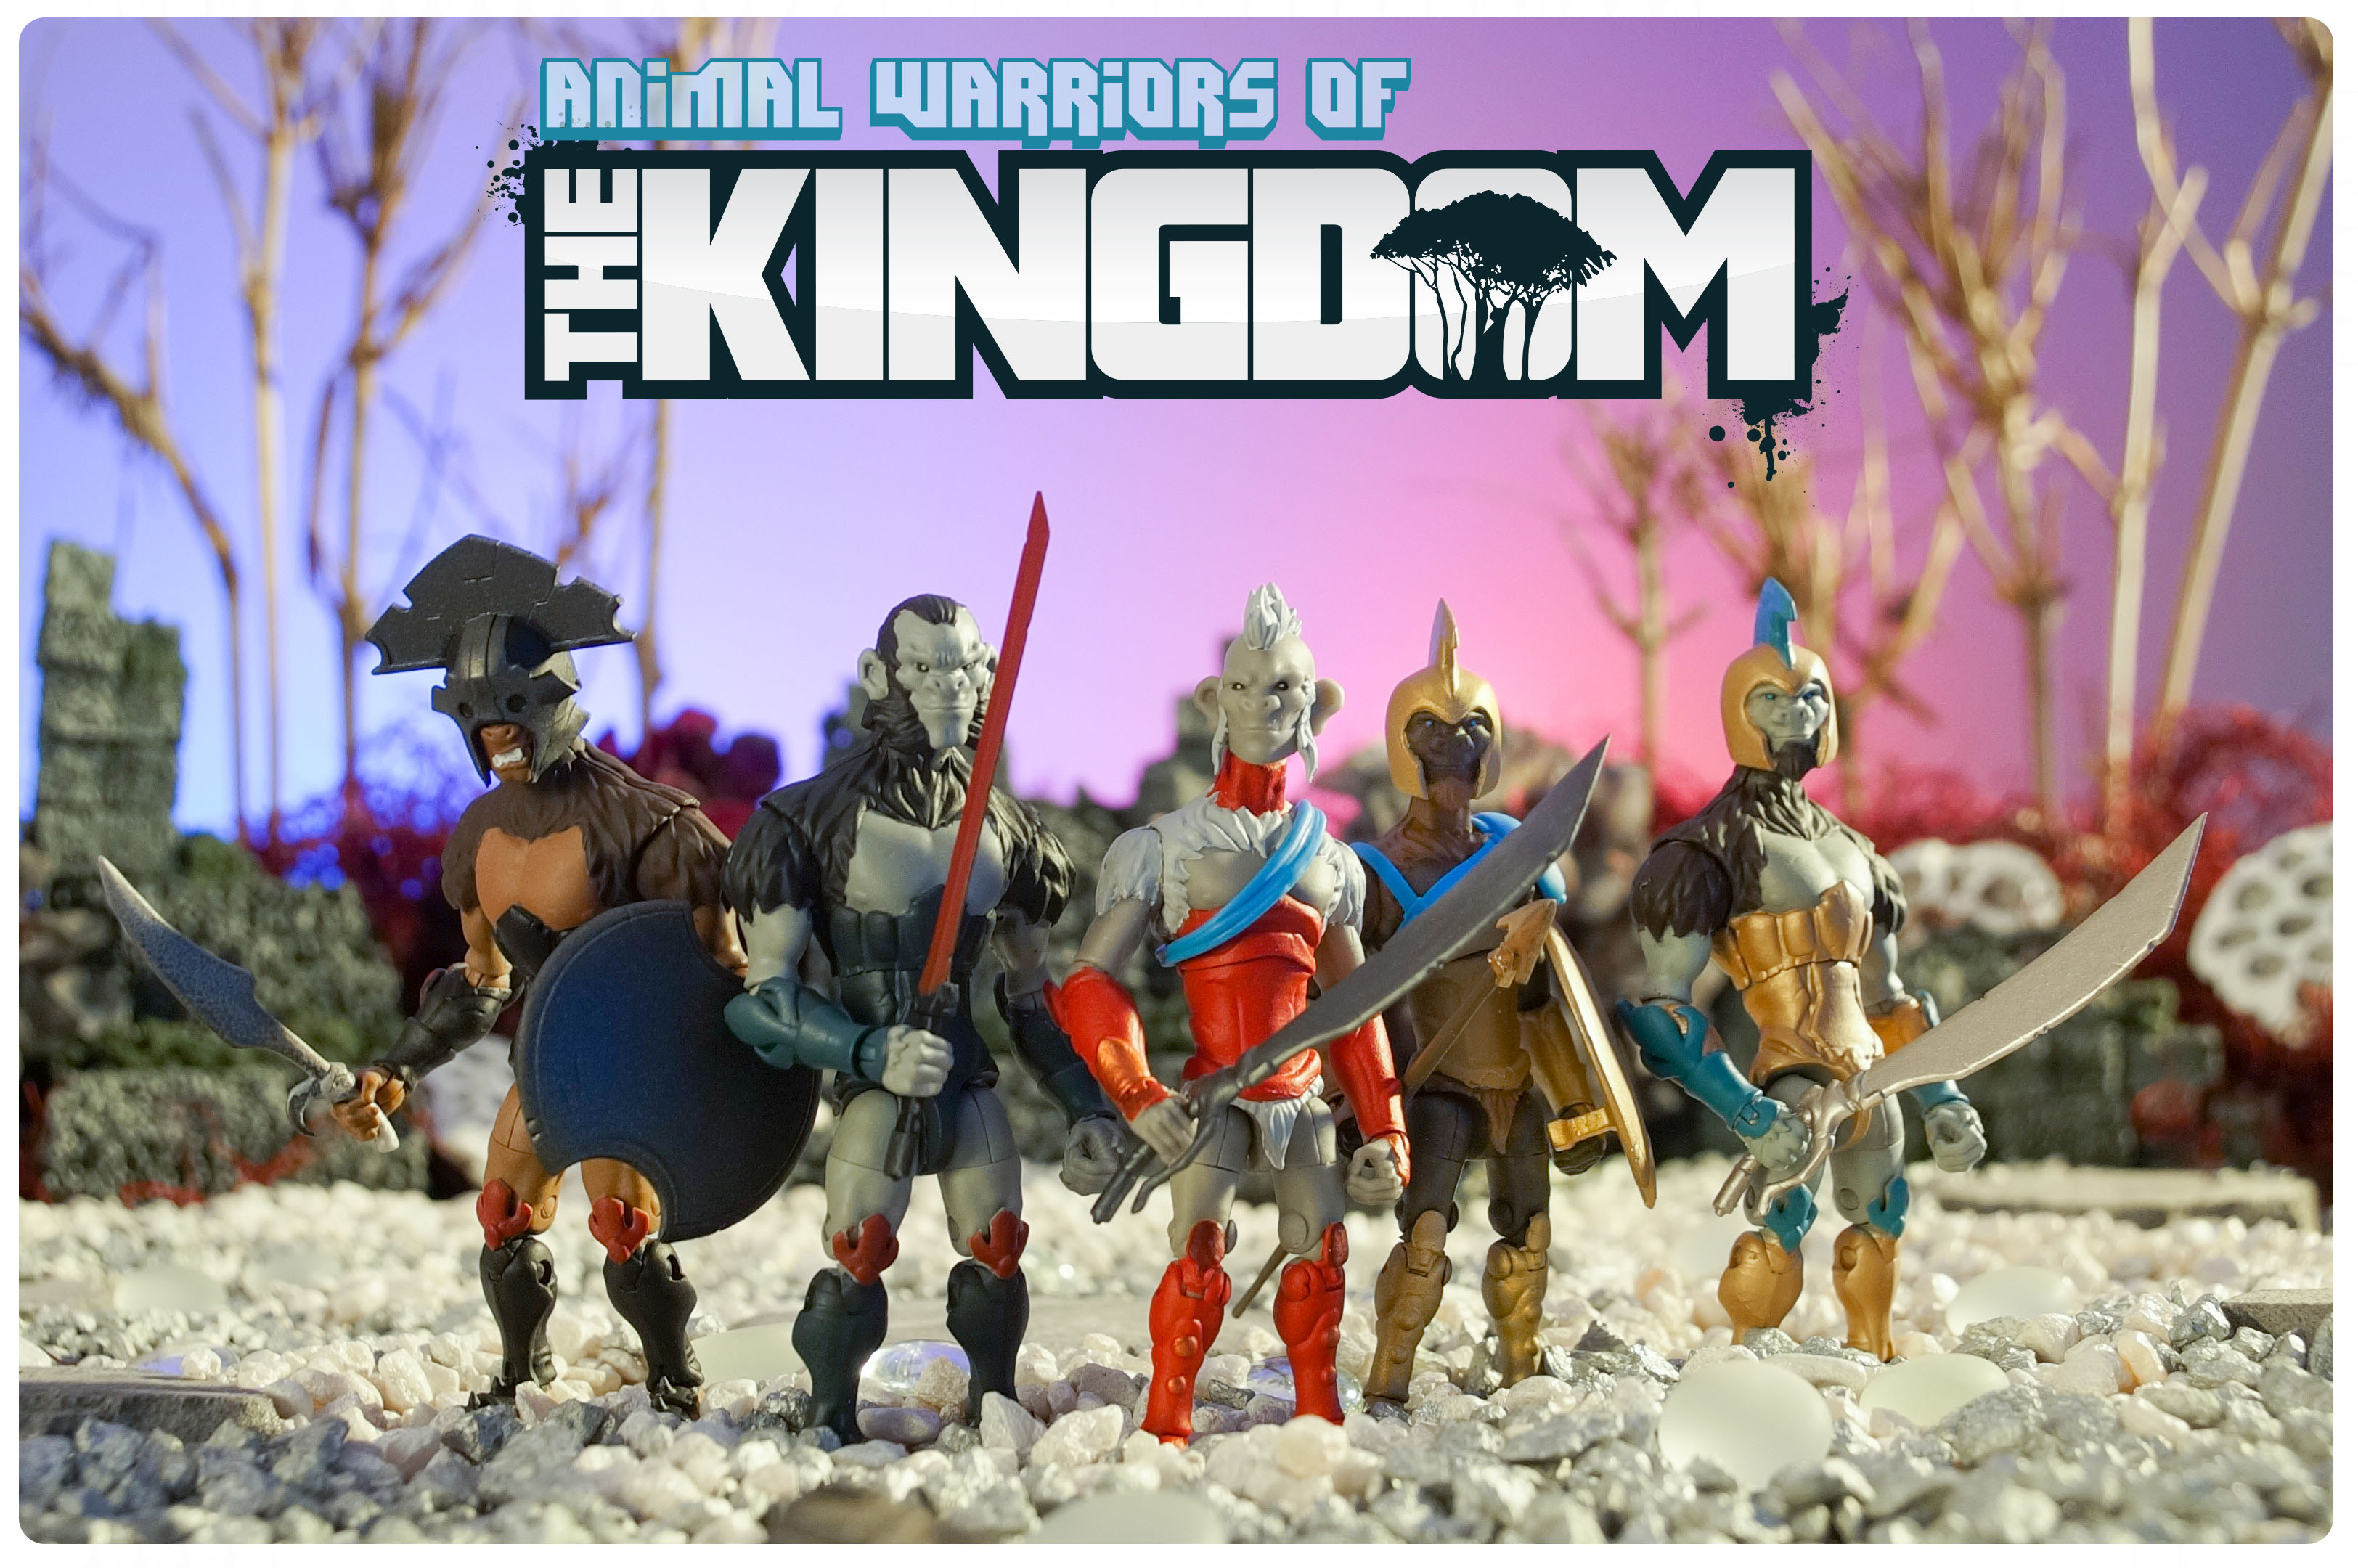 Less Than 48 Hours To Back Animal Warriors of the Kingdom by Spero